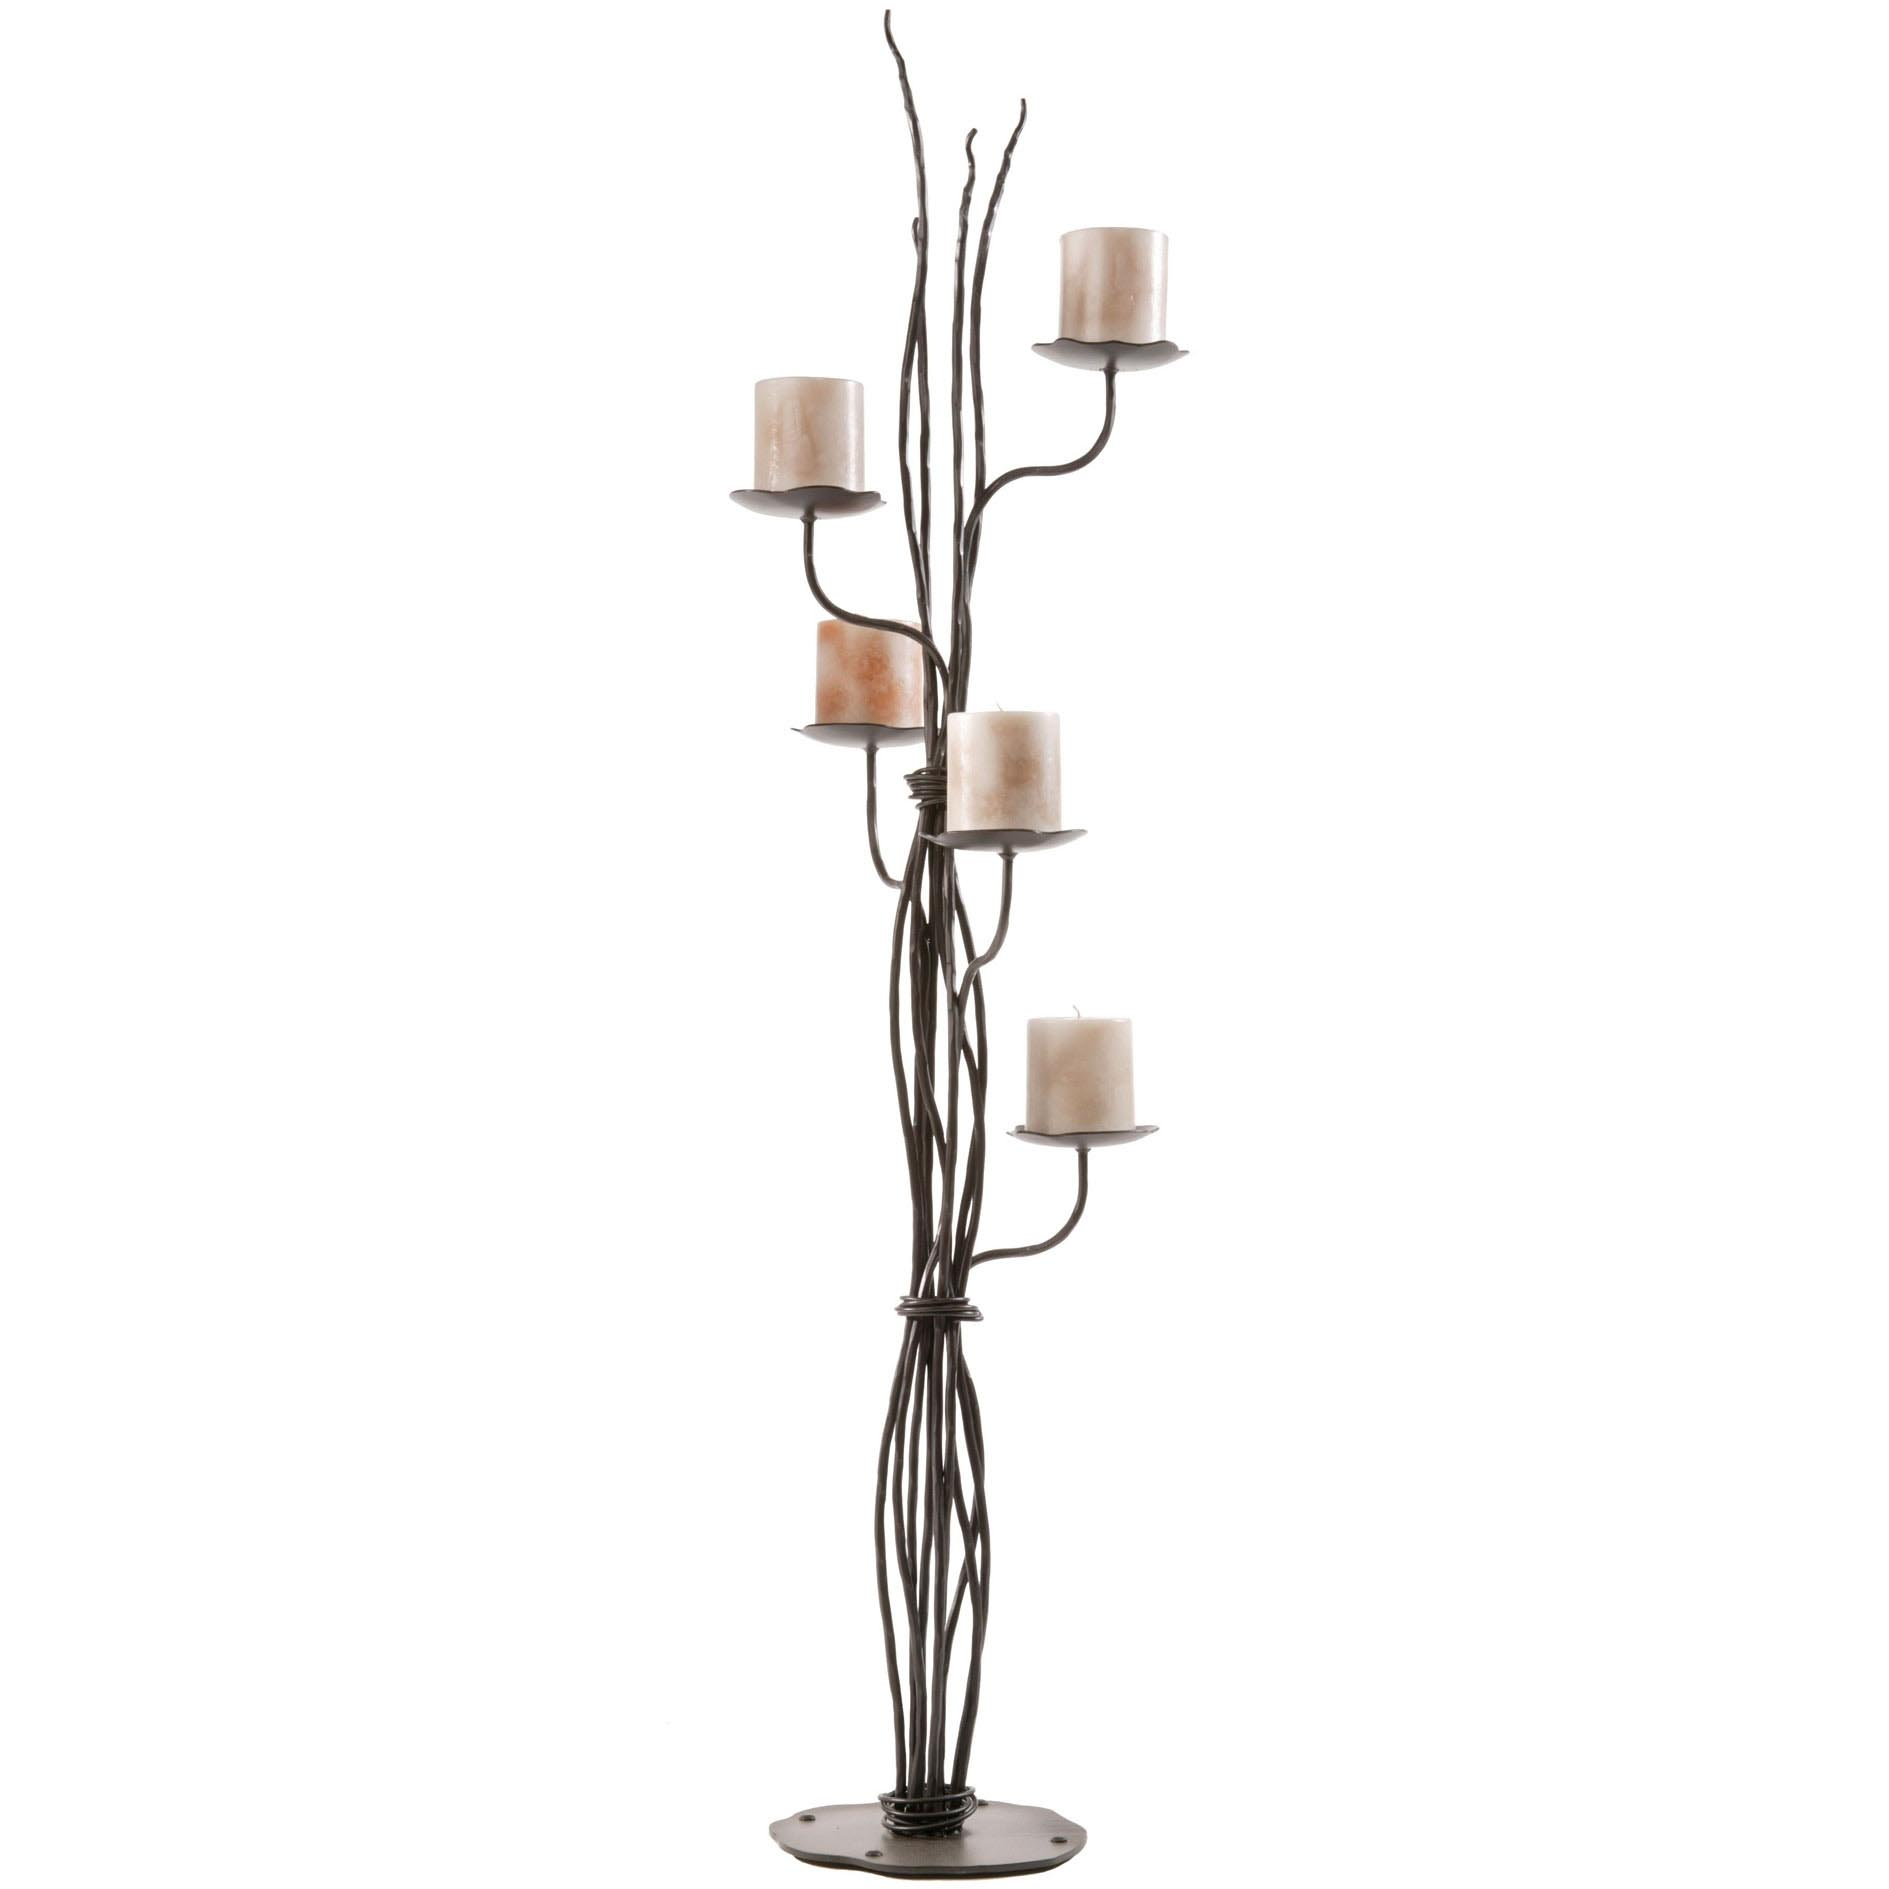 Tall Candle Holders For Different Interiors Light